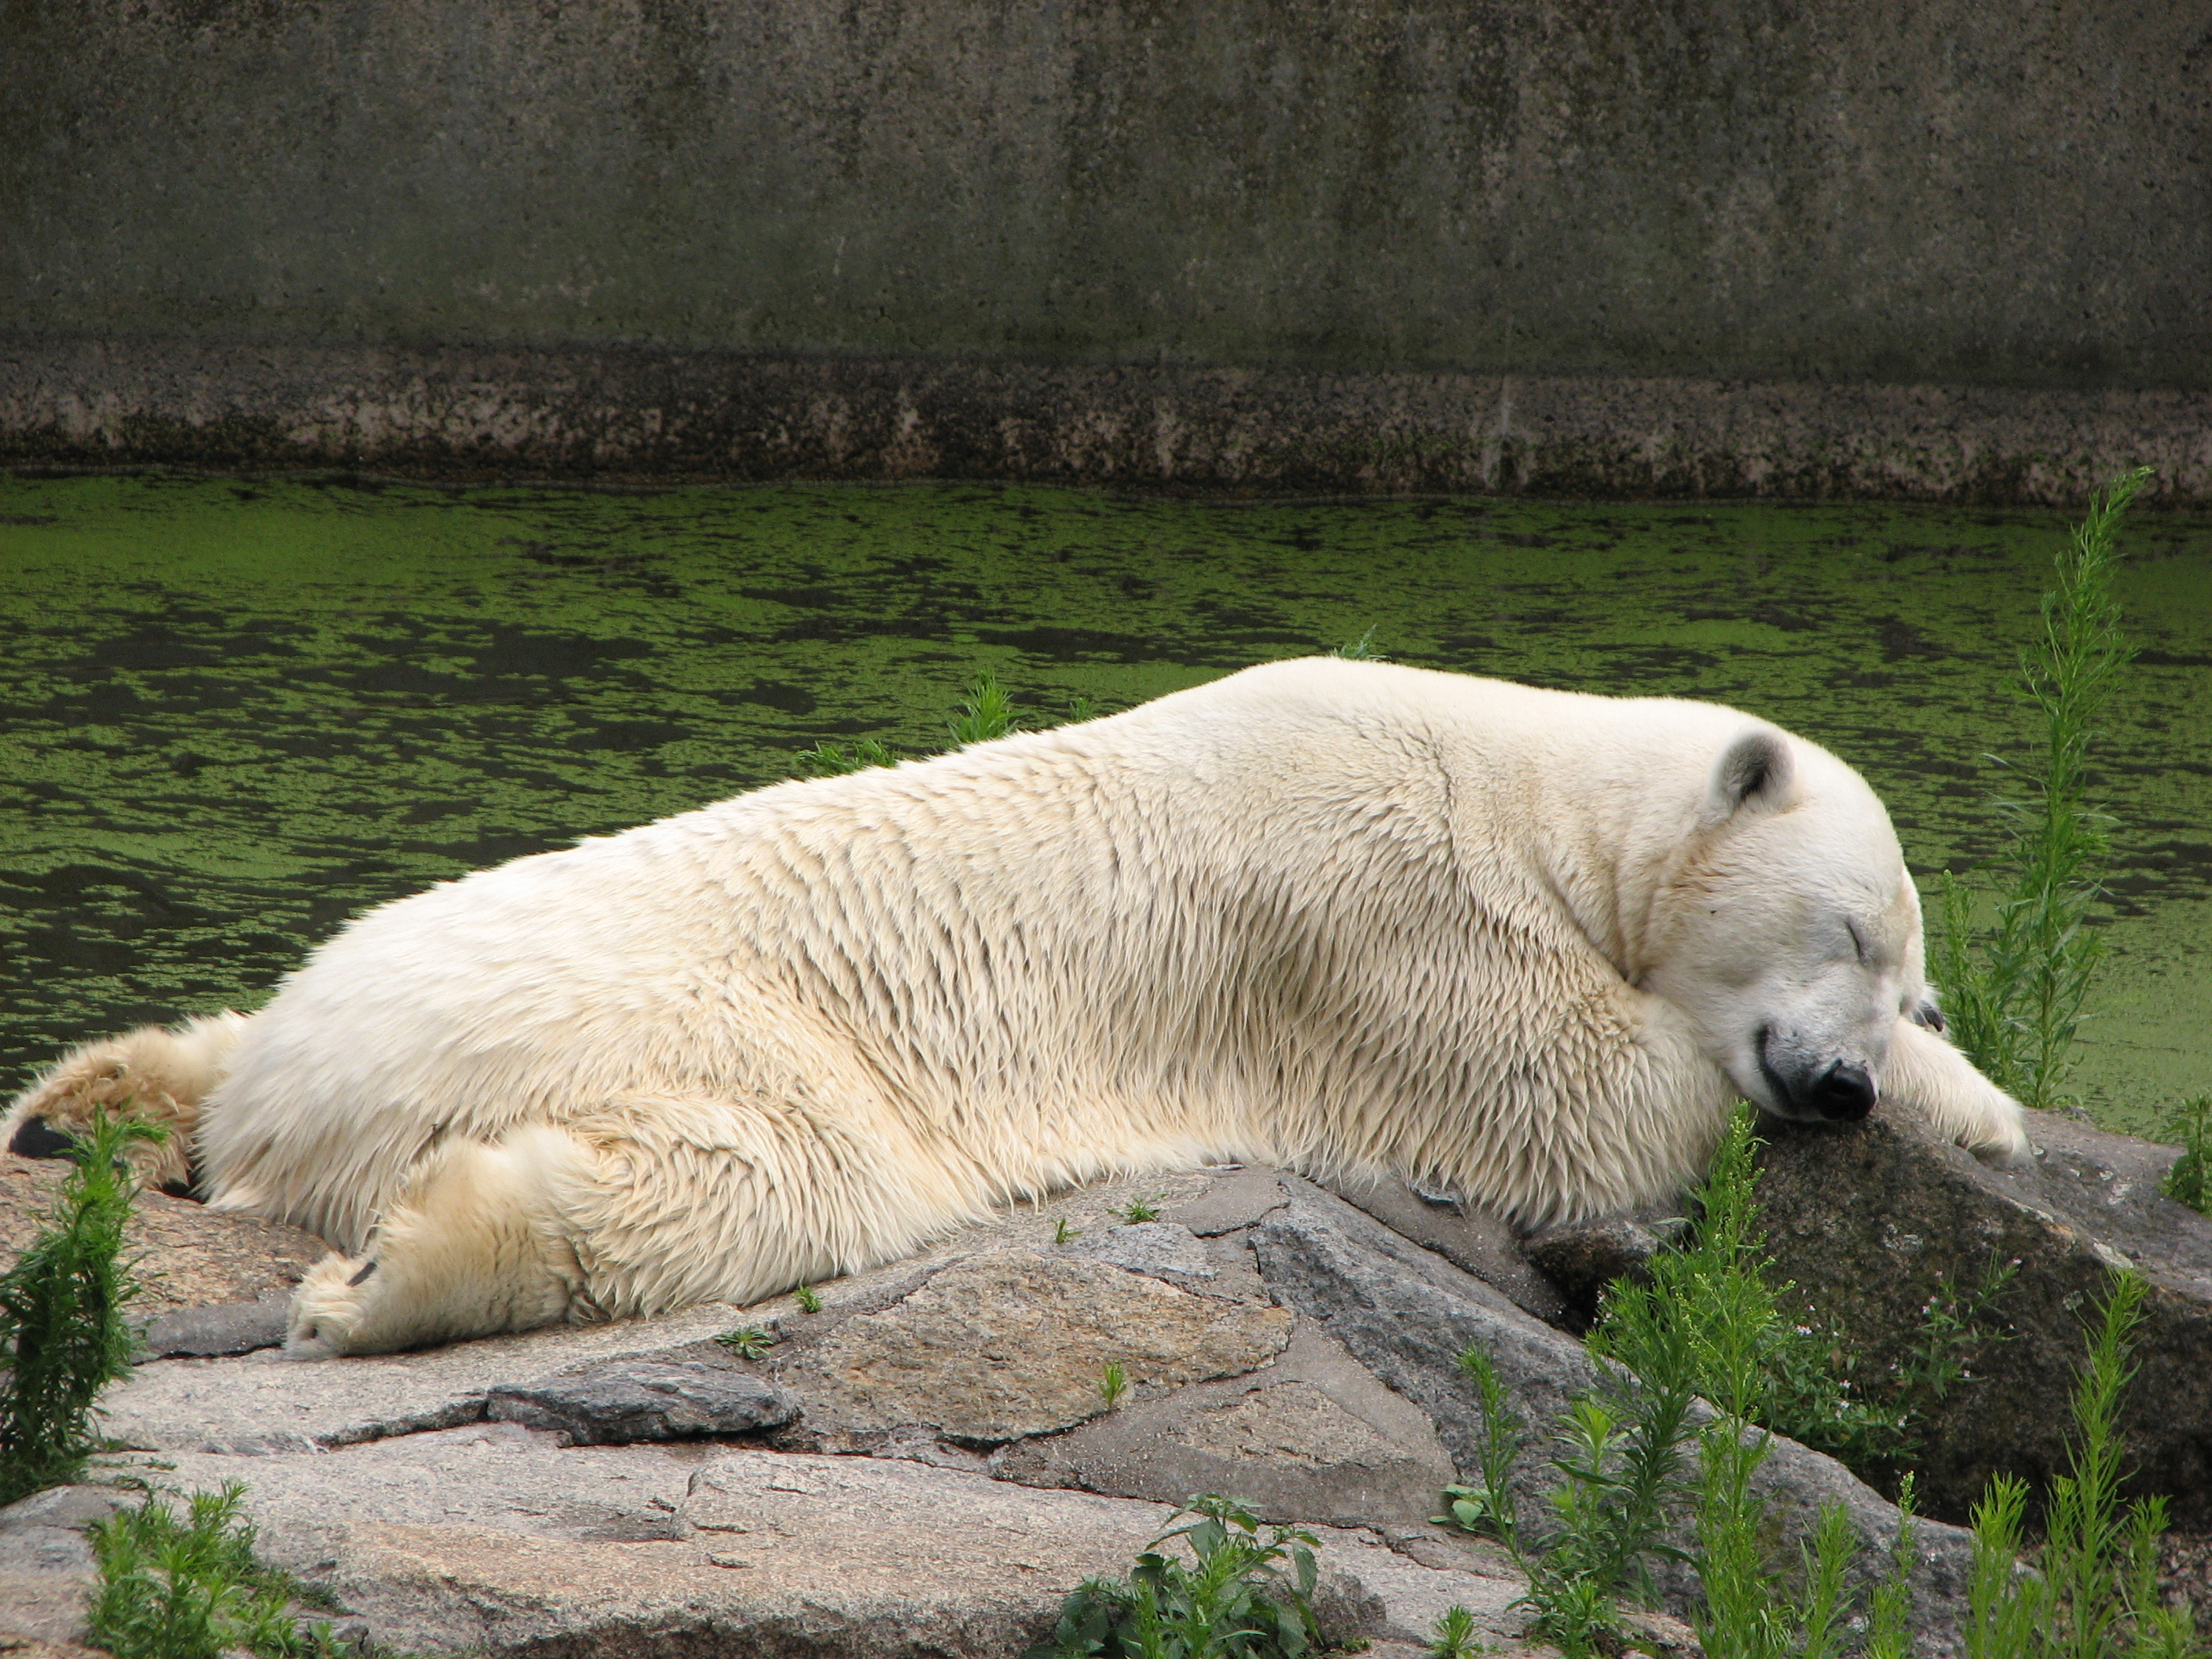 http://upload.wikimedia.org/wikipedia/commons/5/53/Ursus-maritimus-polar-bear-siesta-berlin-zoo.jpg